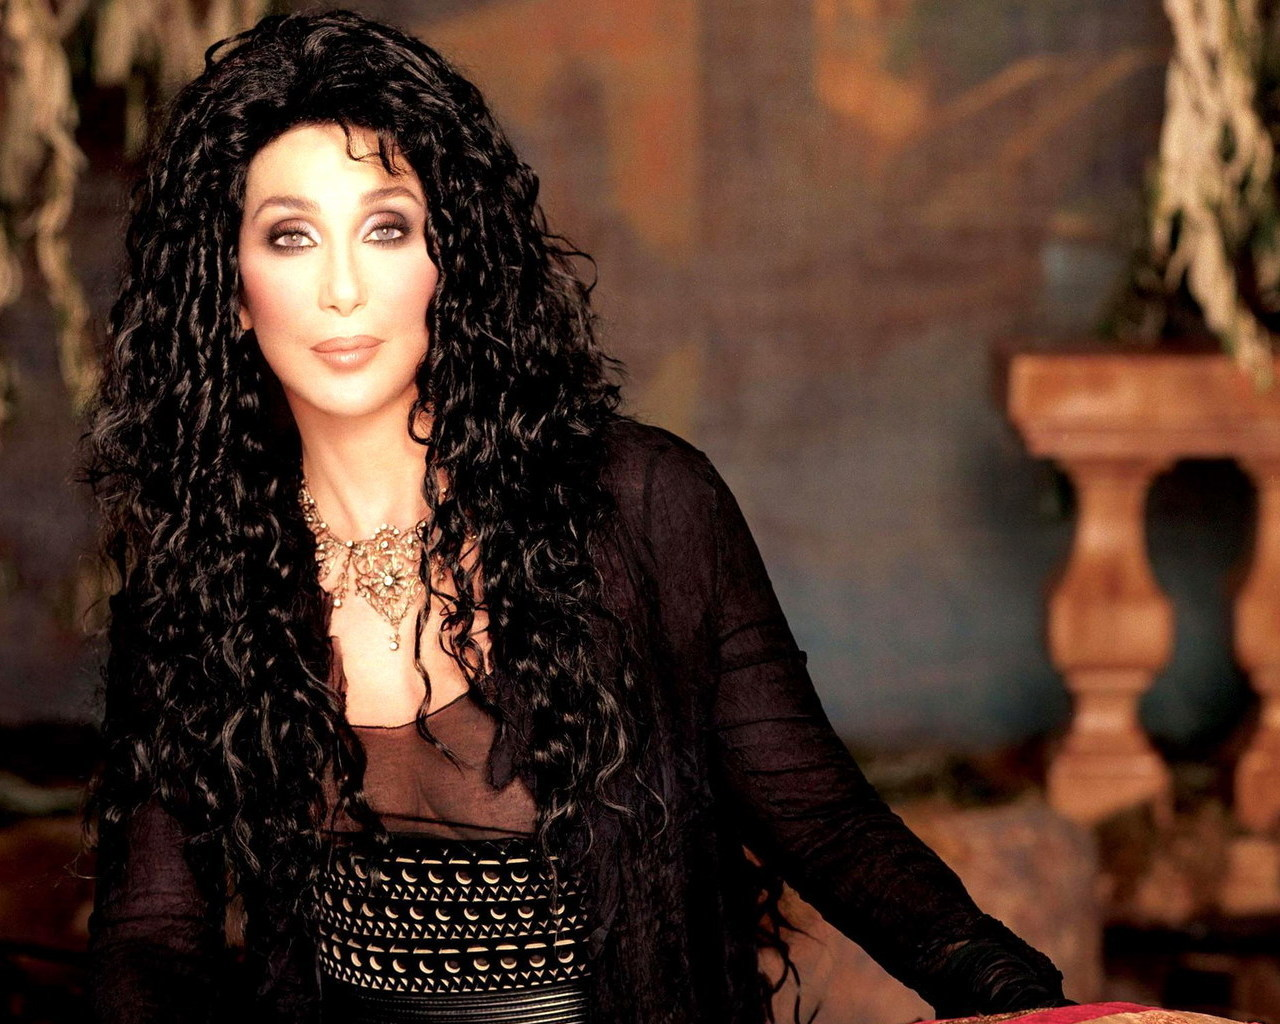 wallpaper on your desktop cher pictures and wallpapers your desktop 1280x1024